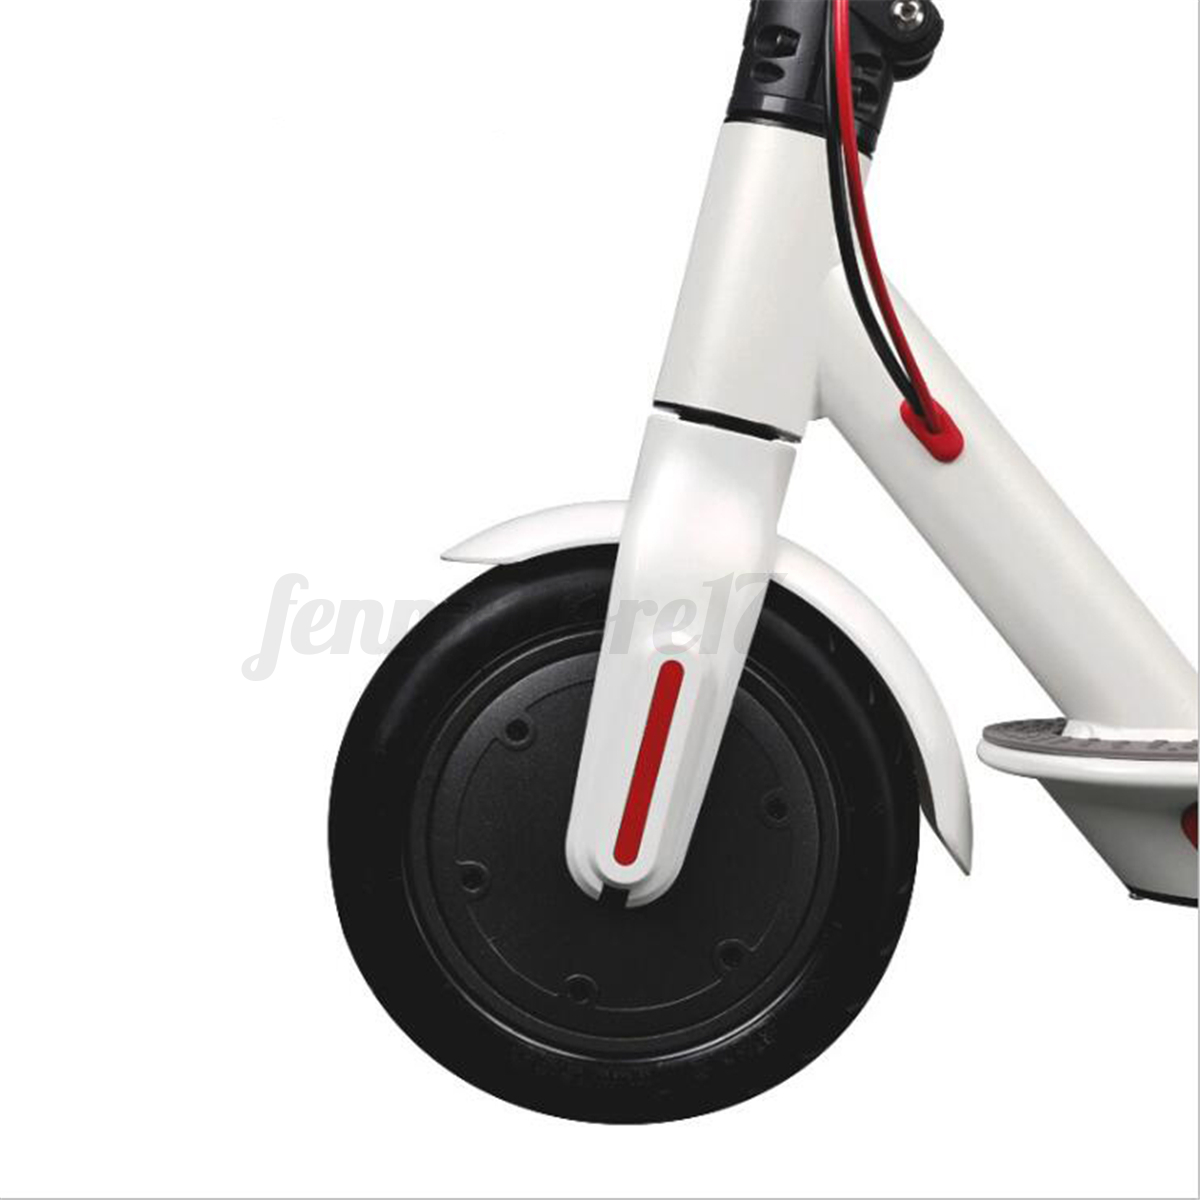 For Xiaomi M365 Electric Scooter Foldable w/APP 4 0 / 6 6 / 7 8 Ah UK US  Plug 1 | eBay